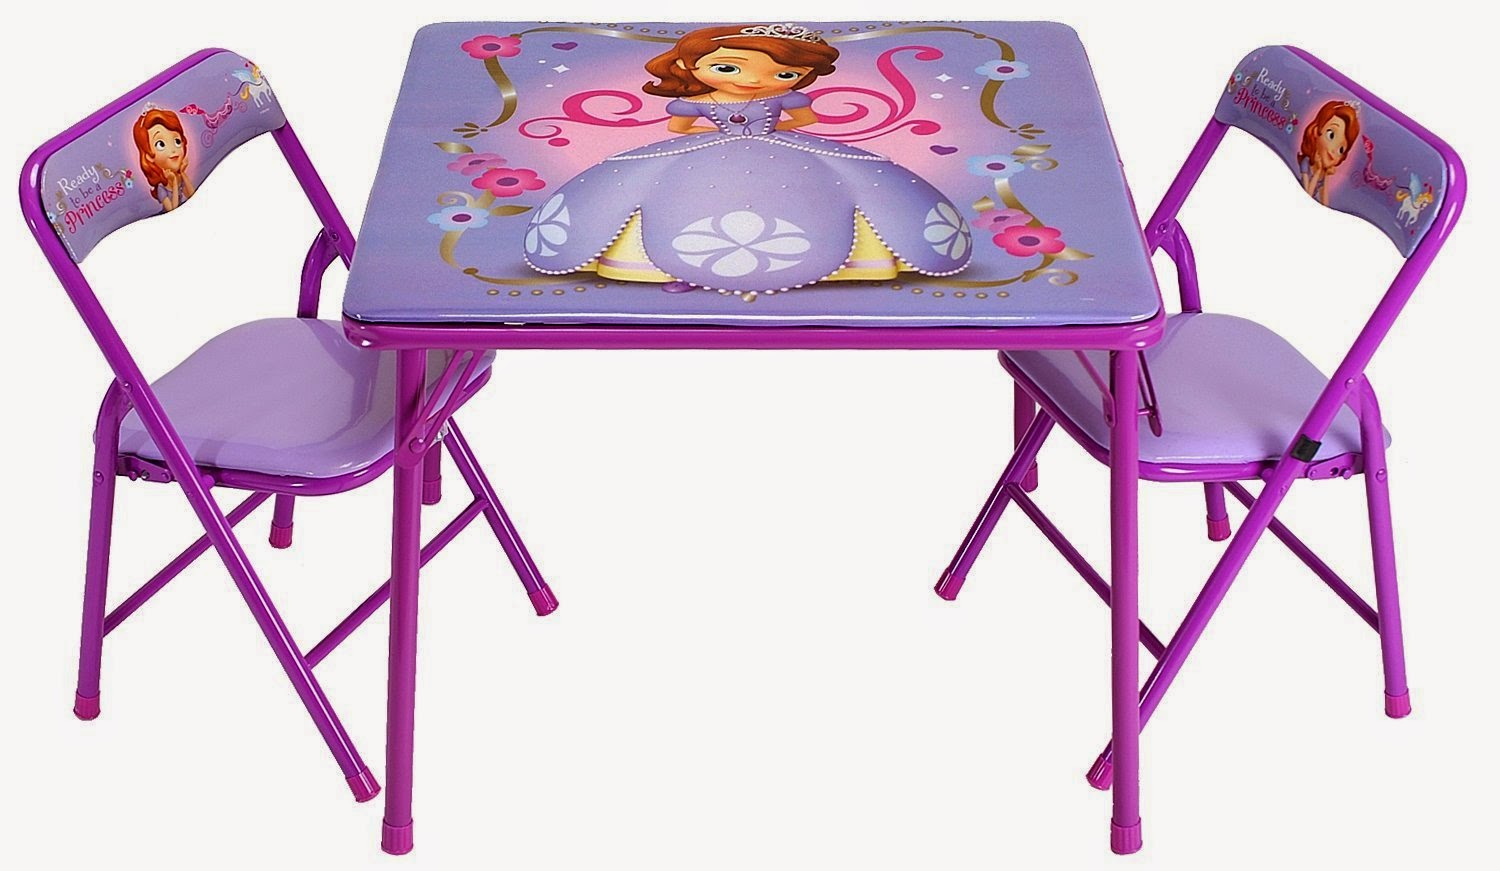 Bedroom Decor Ideas and Designs: How to Decorate a Disney ...